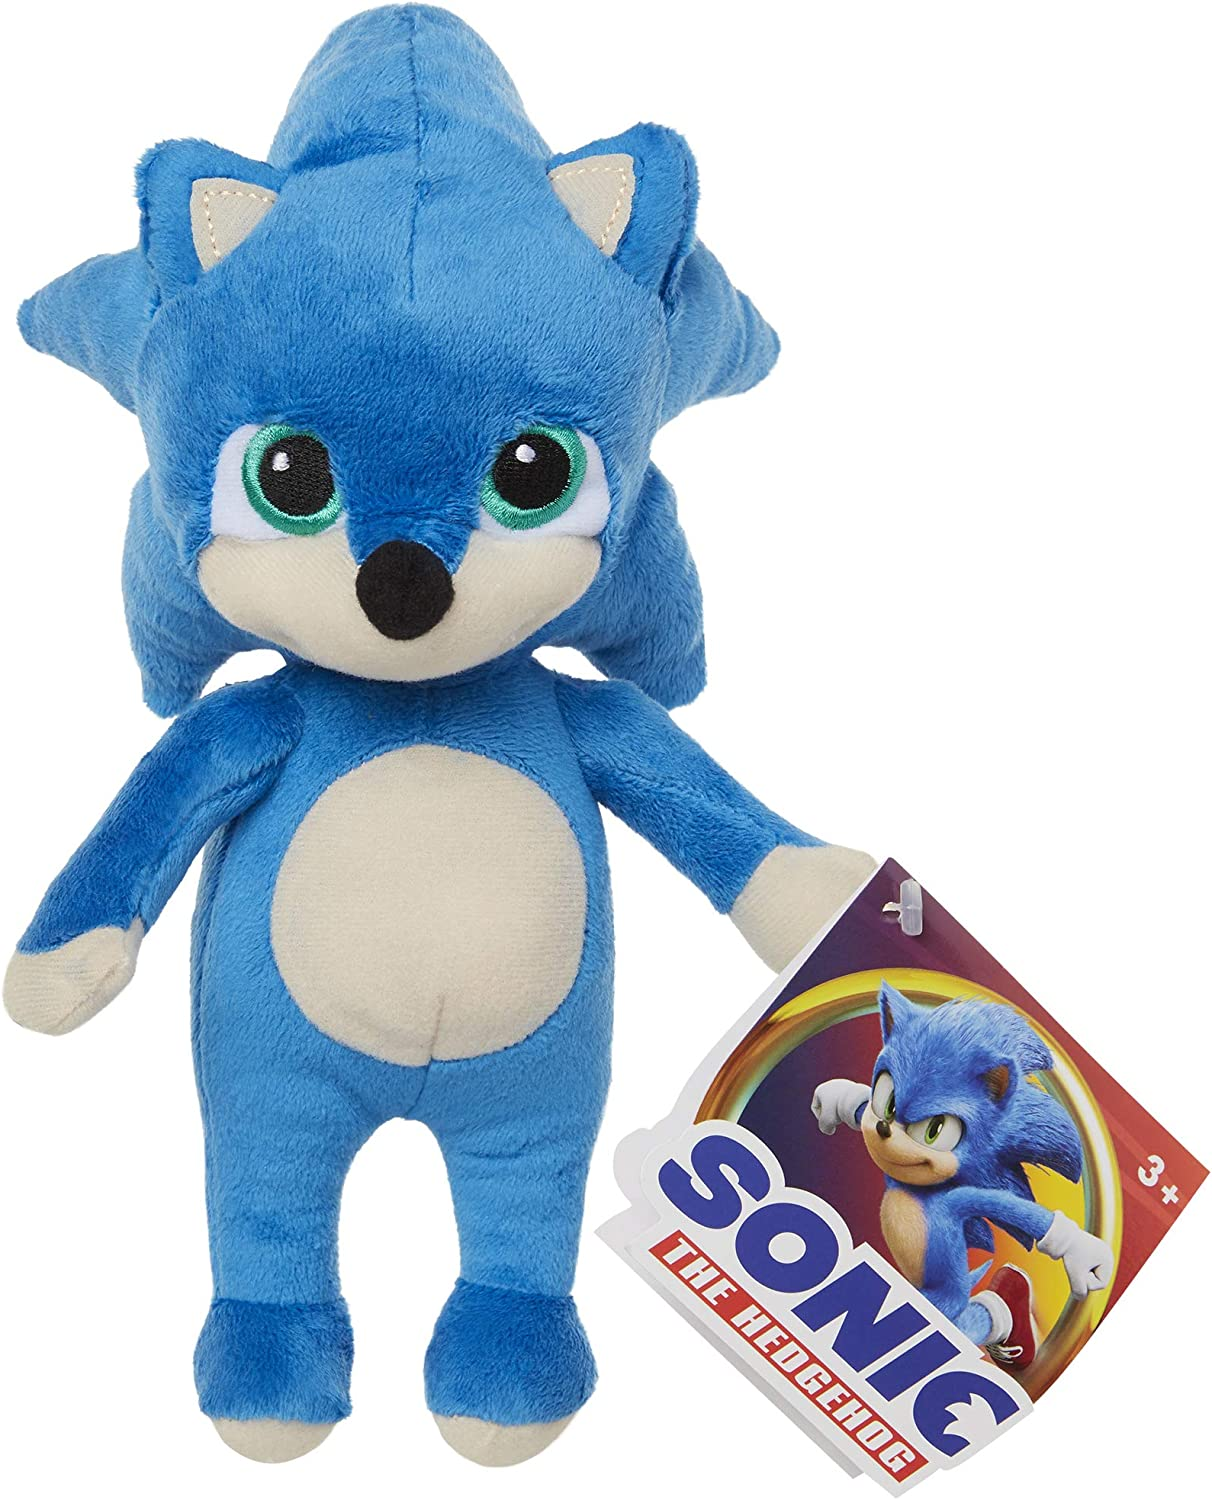 Amazon Com Sonic The Hedgehog 8 5 Inch Baby Sonic Plush Toys Games